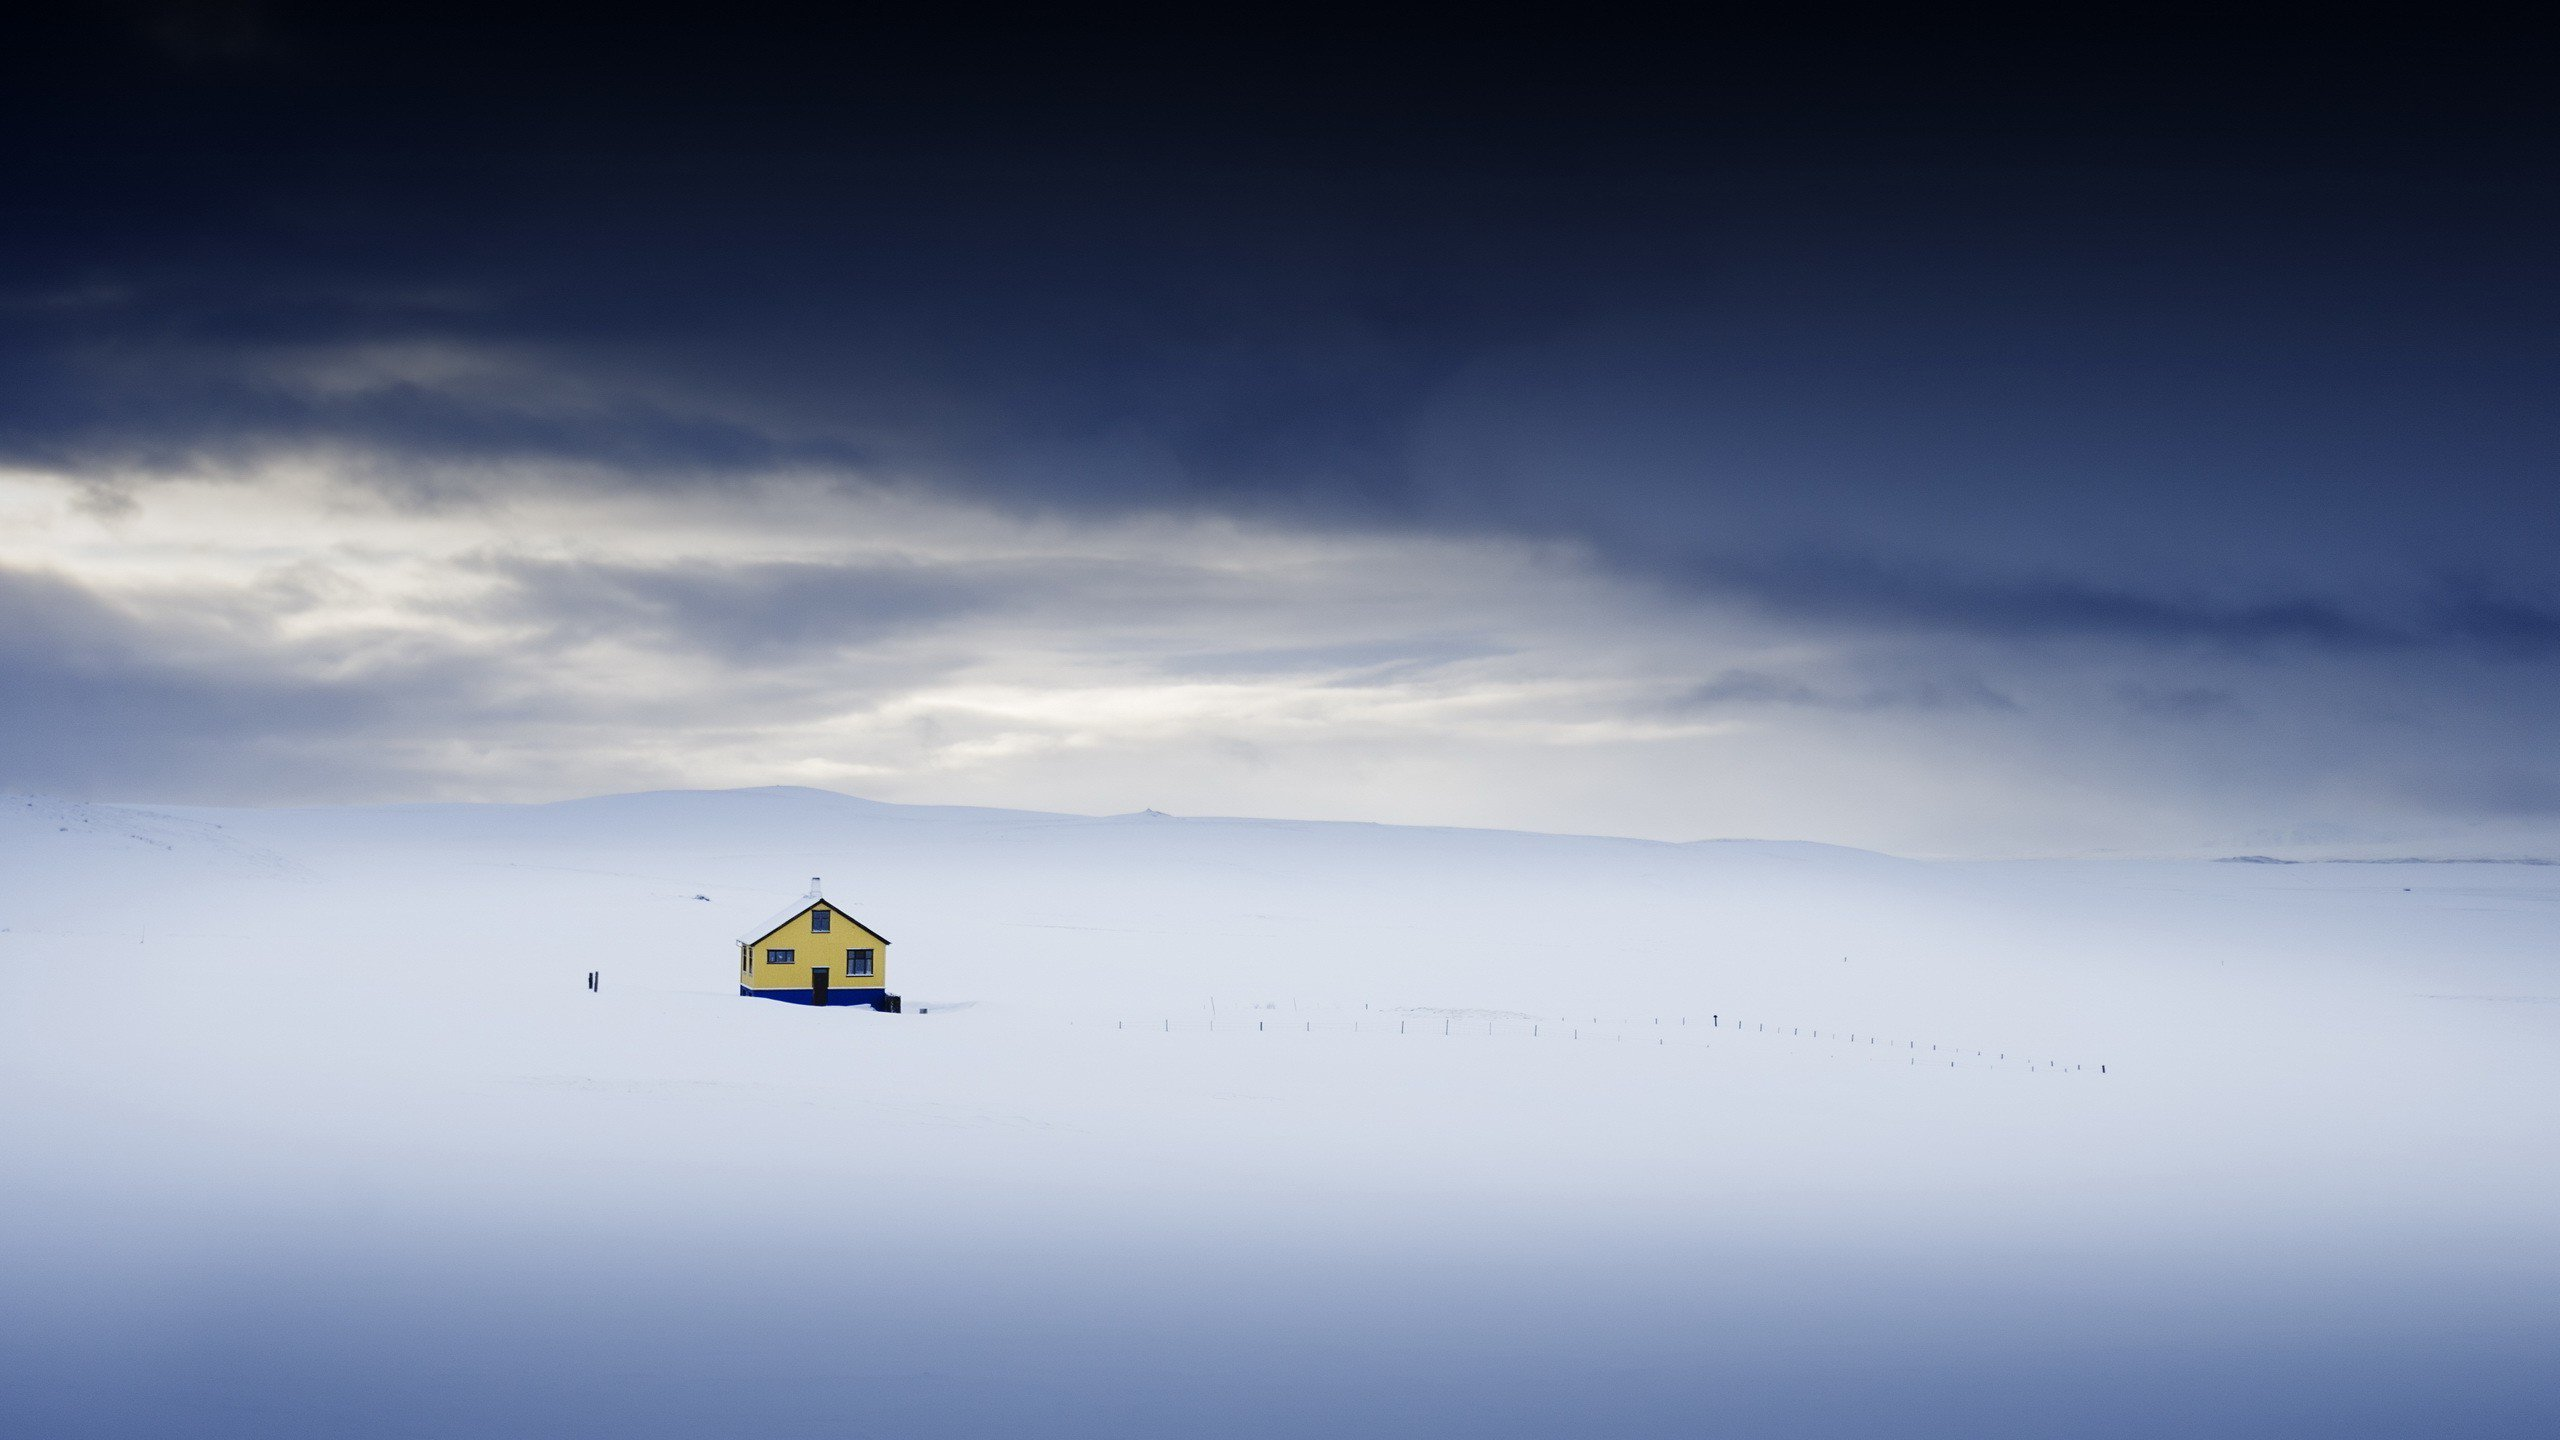 Alone House On Top Of Ice Mountains